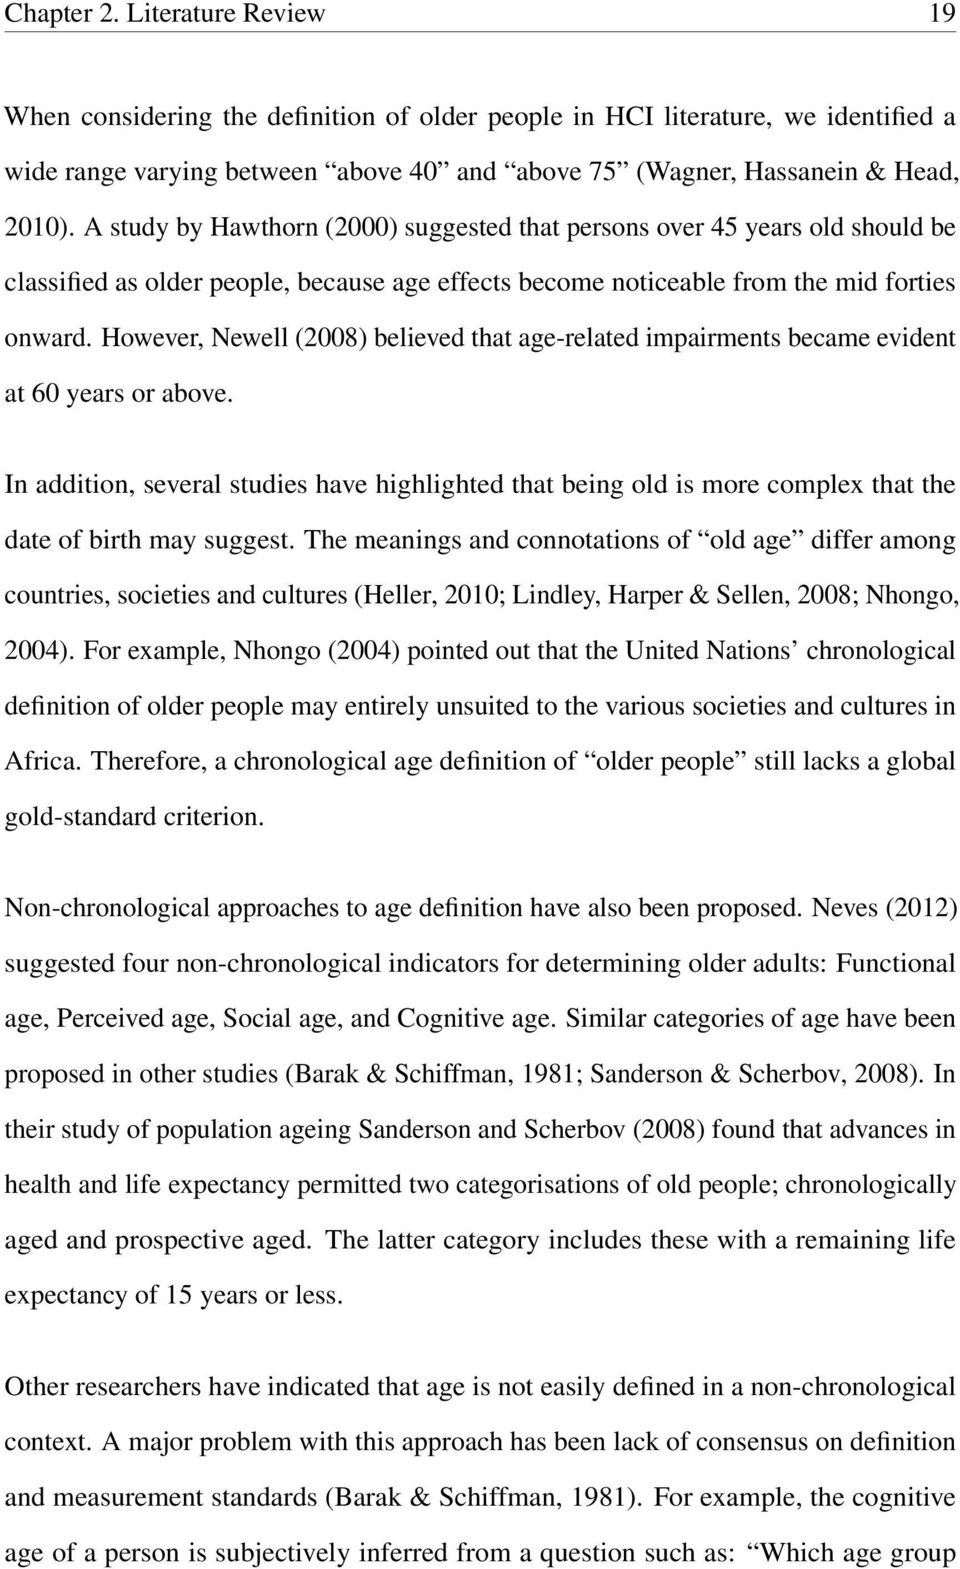 However, Newell (2008) believed that age-related impairments became evident at 60 years or above.